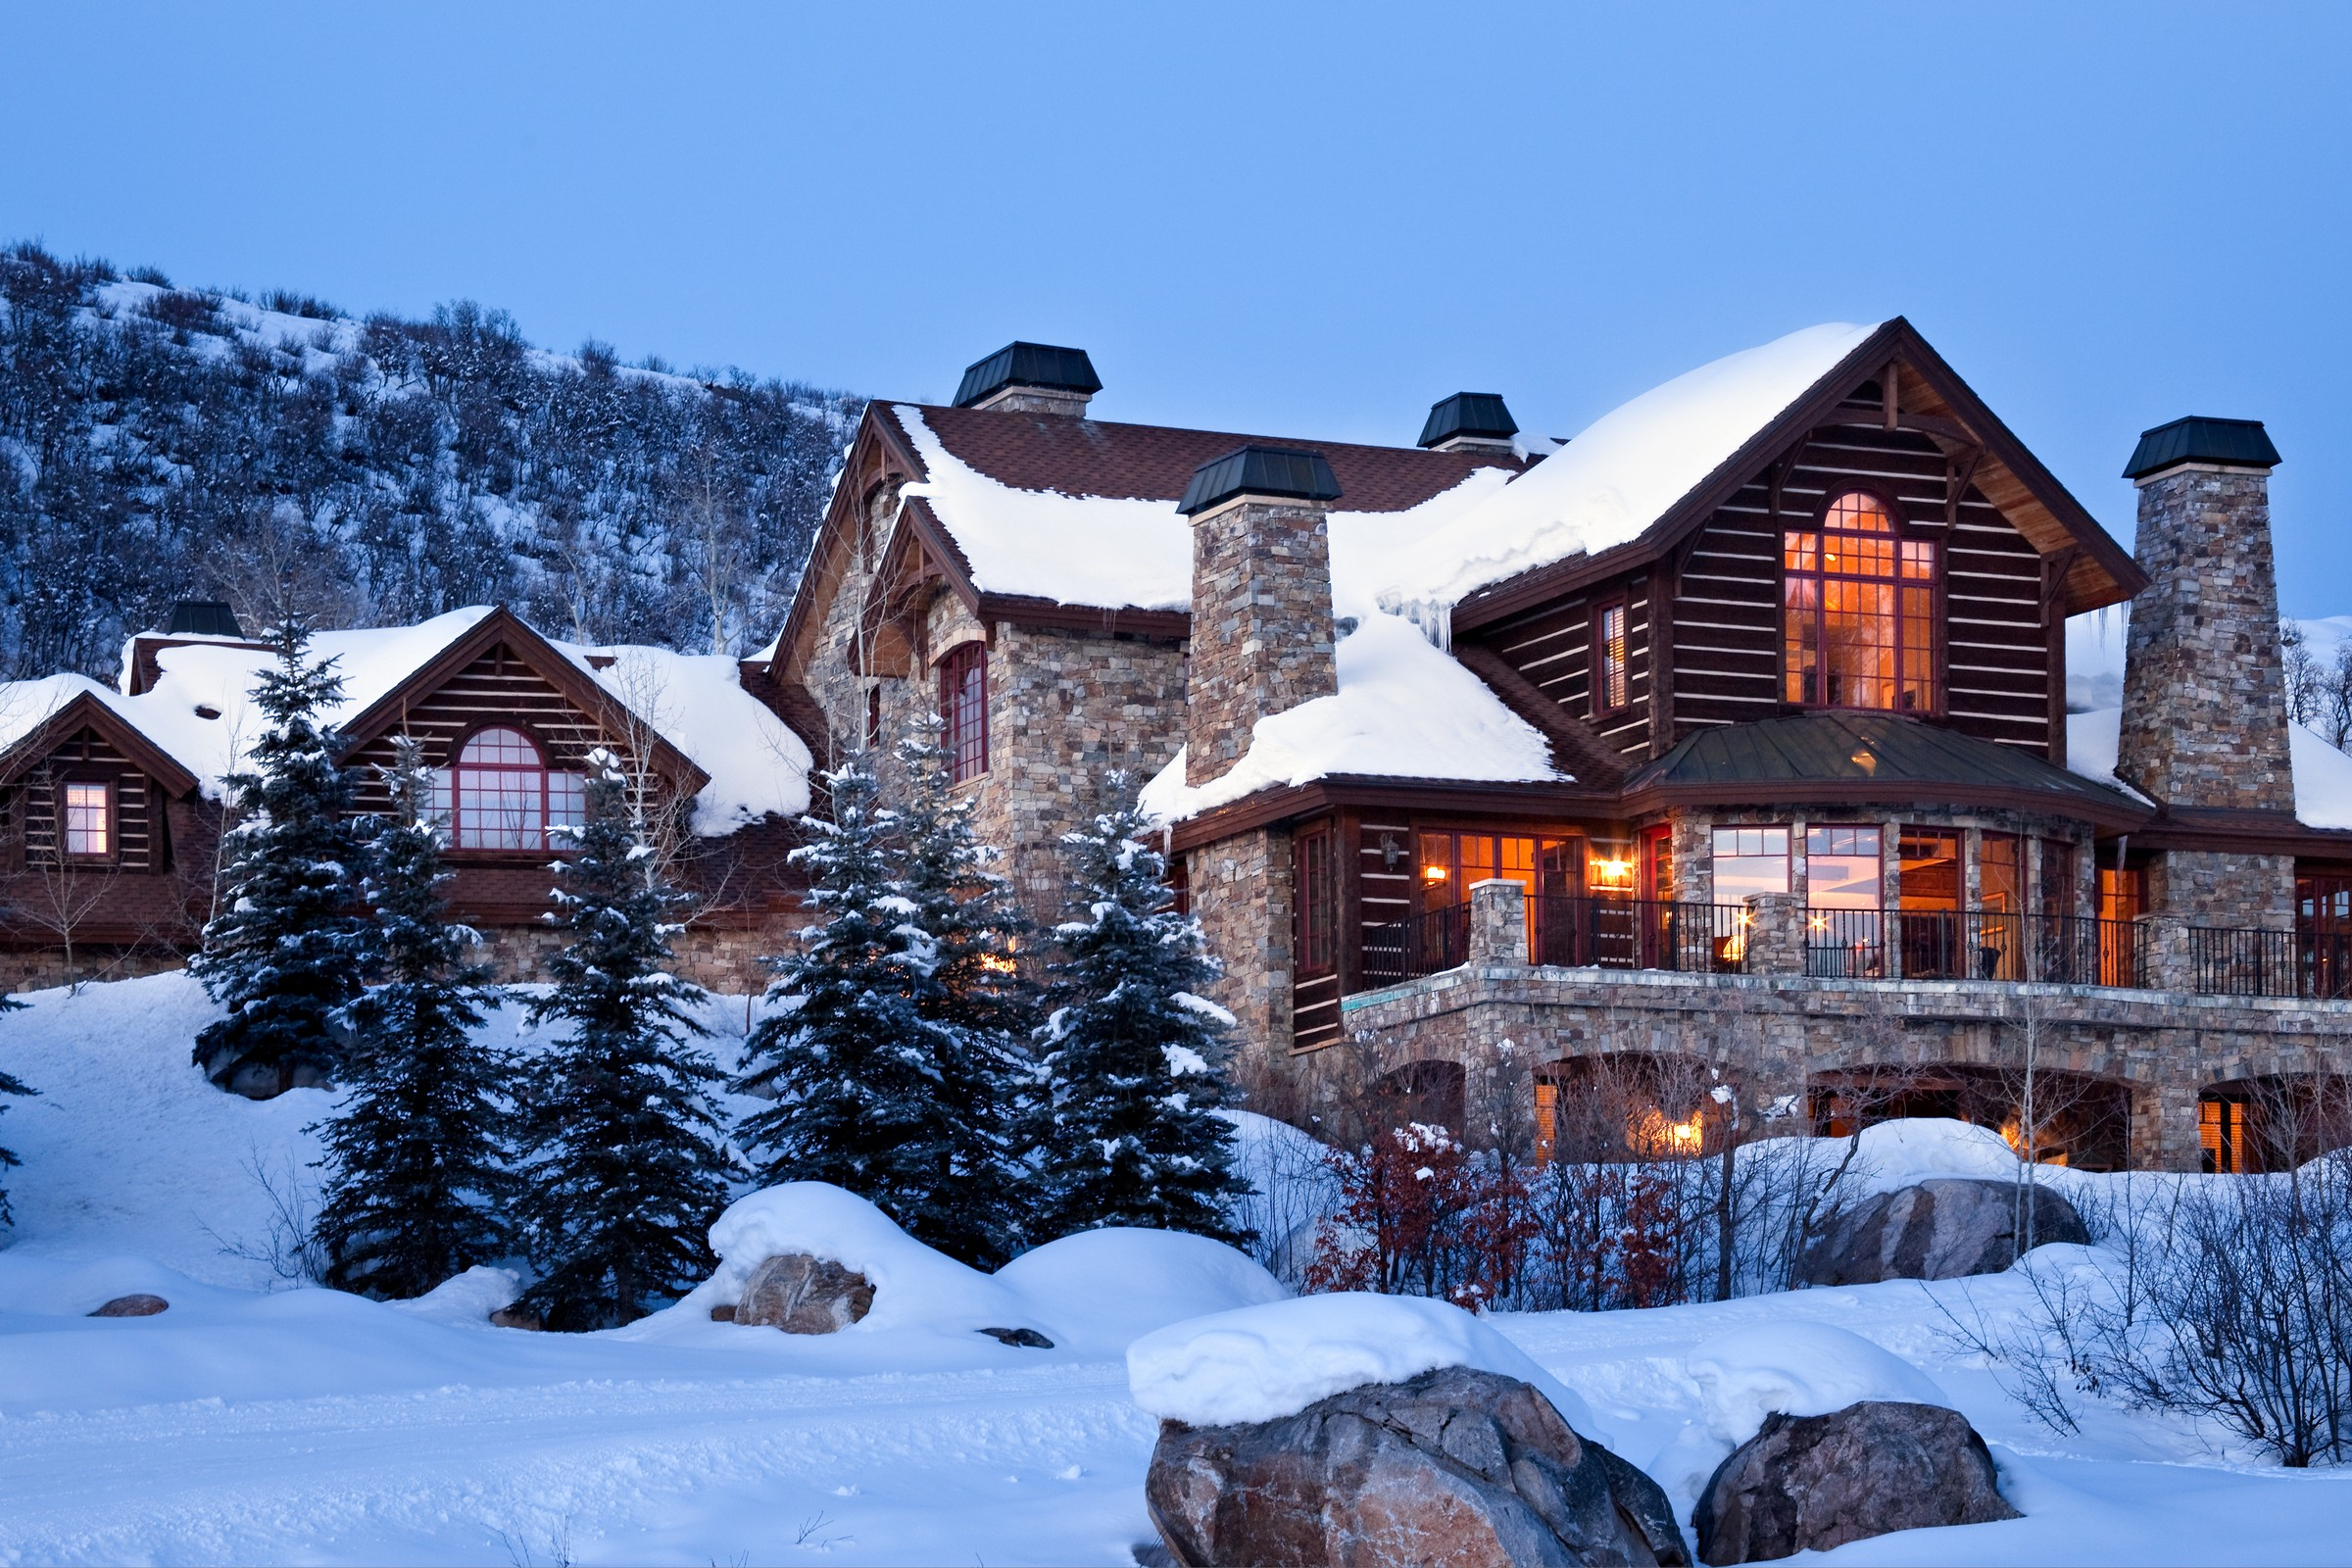 Single Family Home for Sale at The Sanctuary 2275 Golf View Way Steamboat Springs, Colorado, 80487 United States